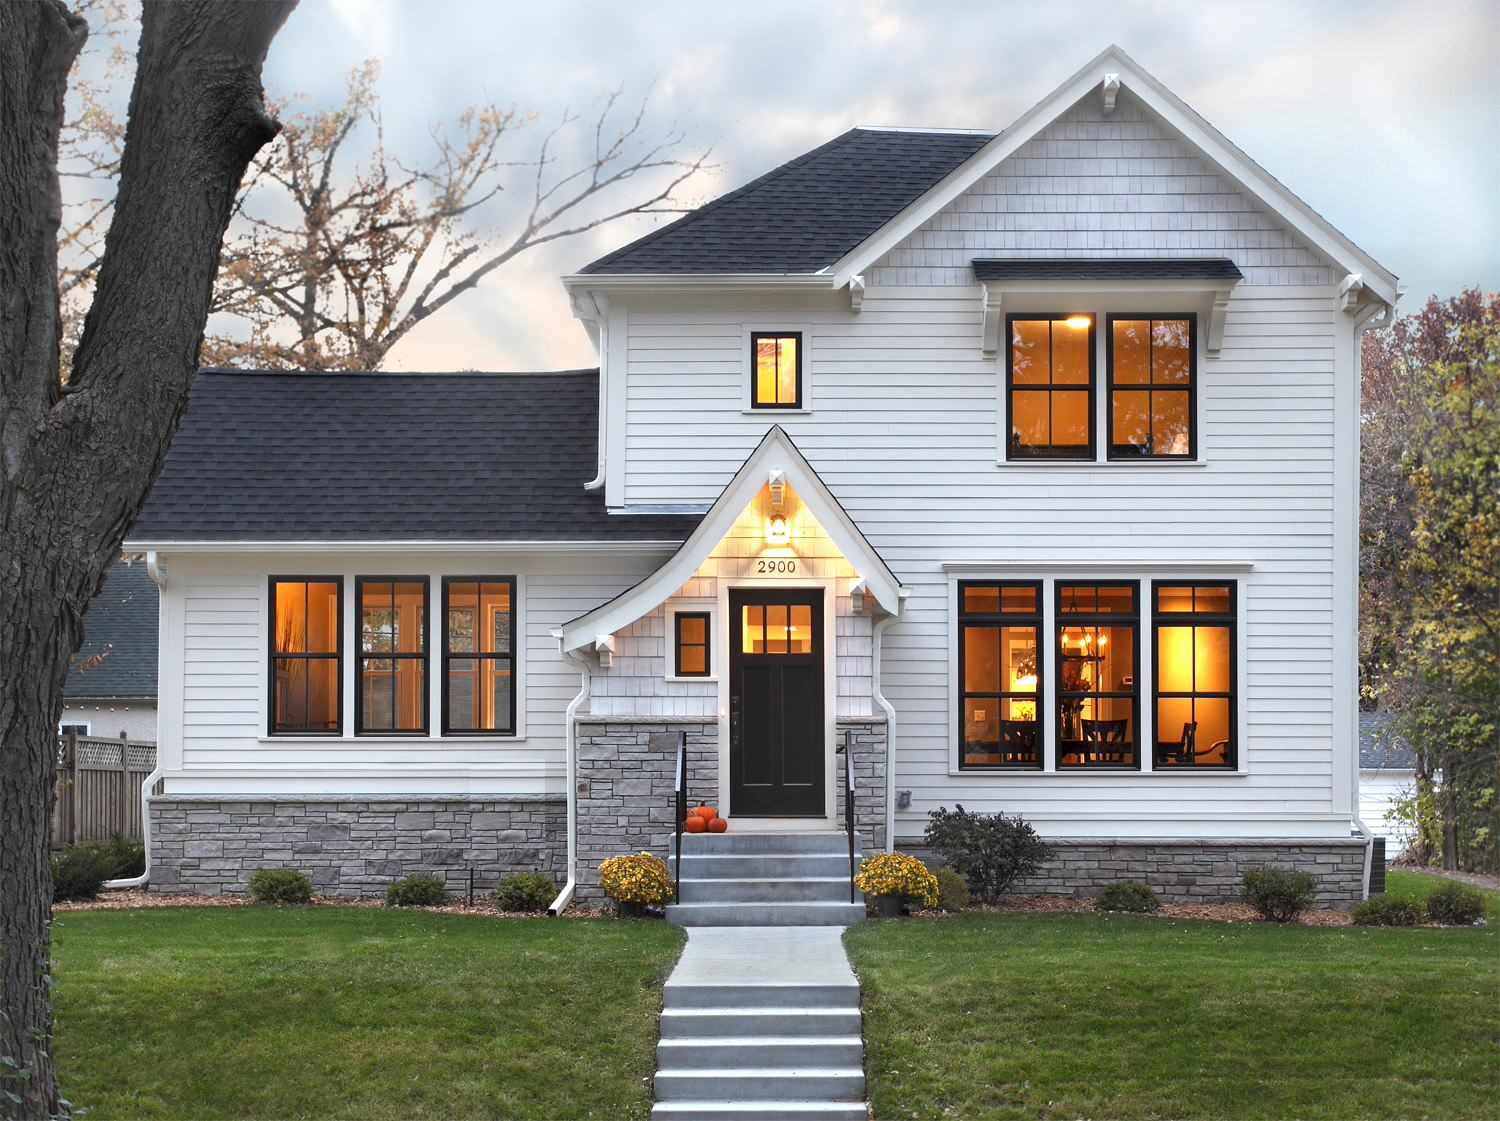 White house black trim Traditional Exterior dutch gable roof exterior lighting fiber cement hardie horizontal siding